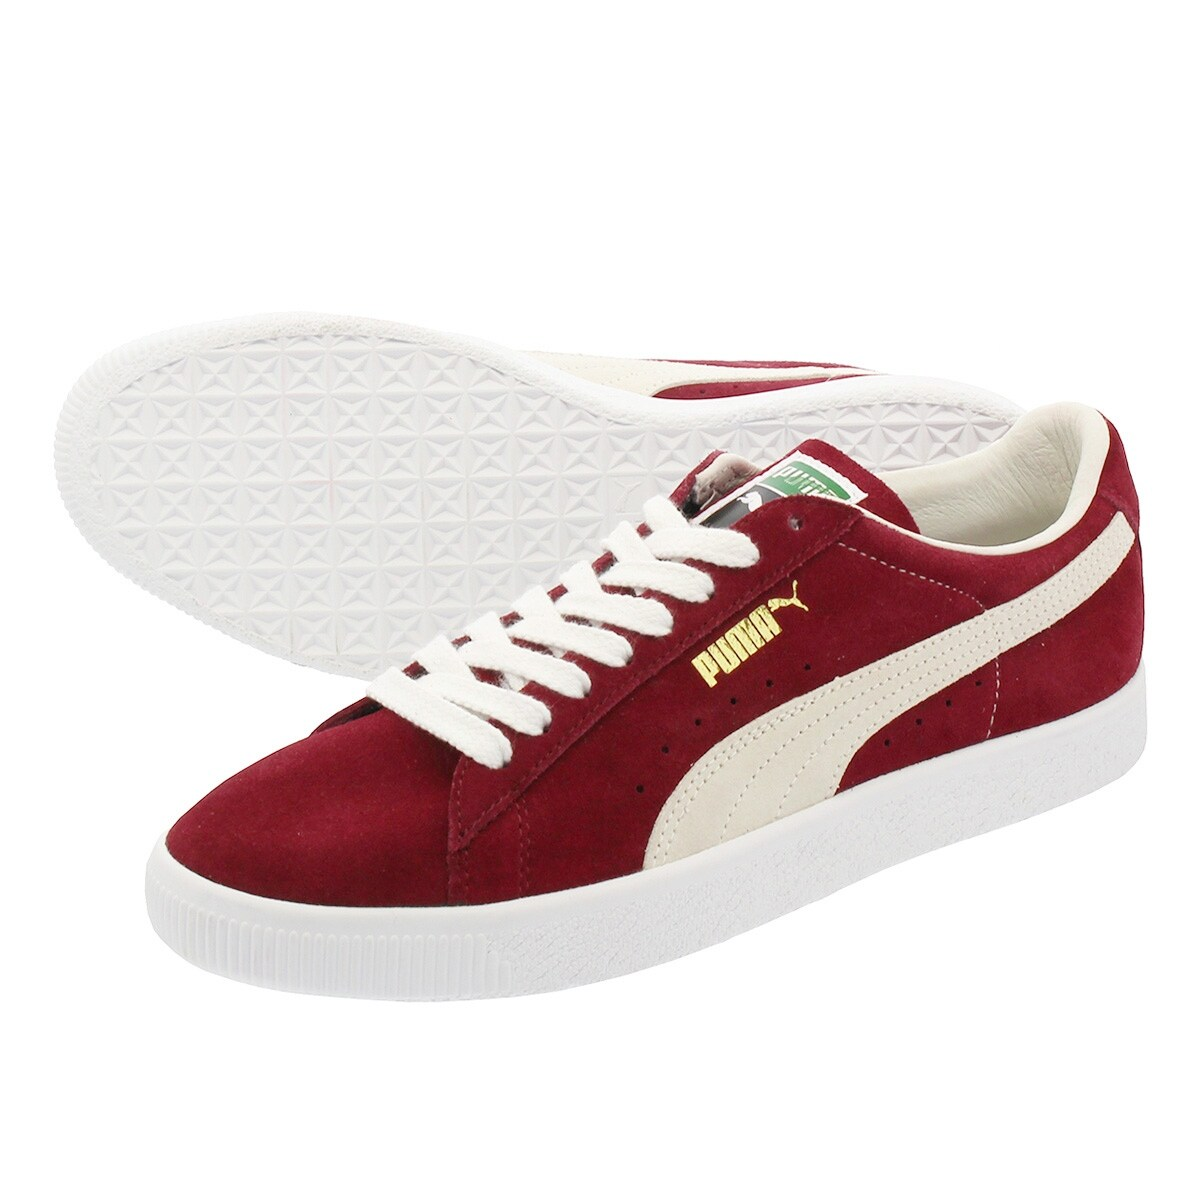 quality design e94b7 25452 Puma Mens Suede 90681 Leather Low Top Lace Up Skateboarding Shoes